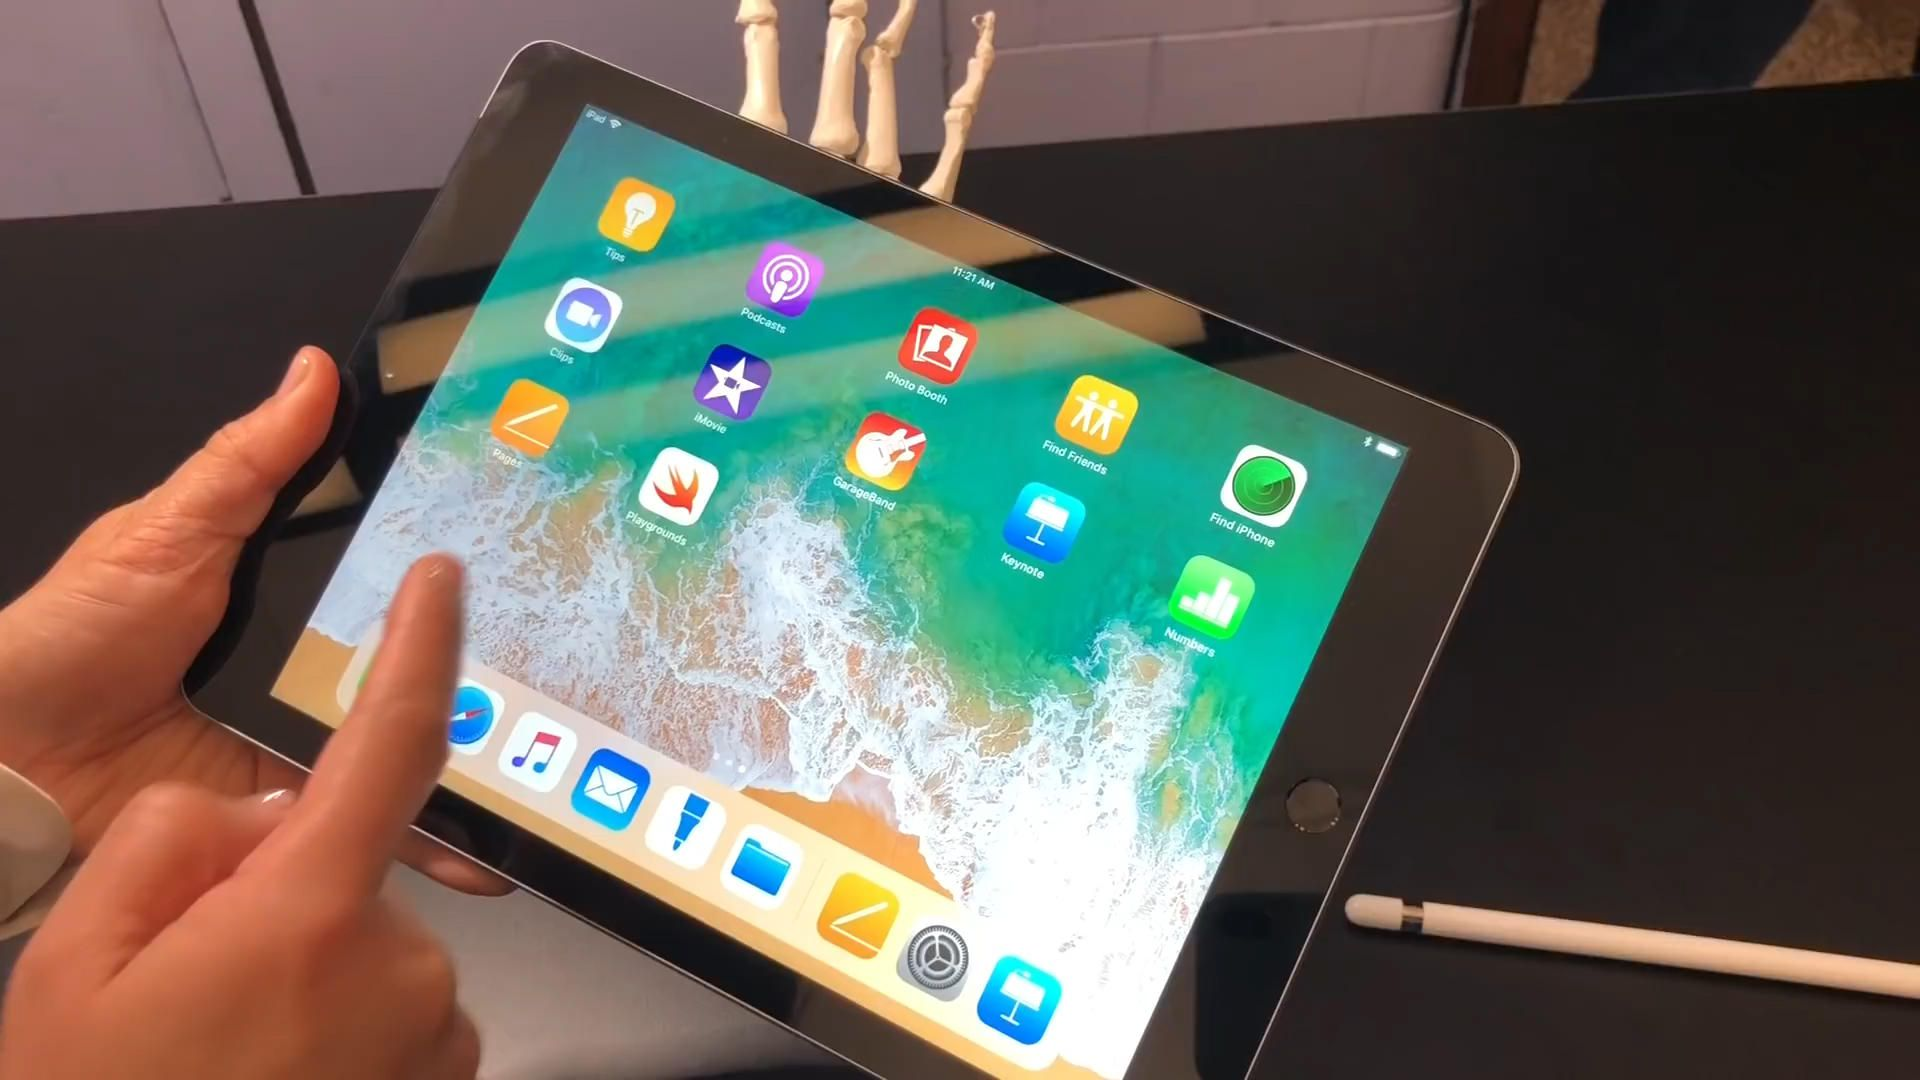 iPad Gen 6 (2018) Cellular